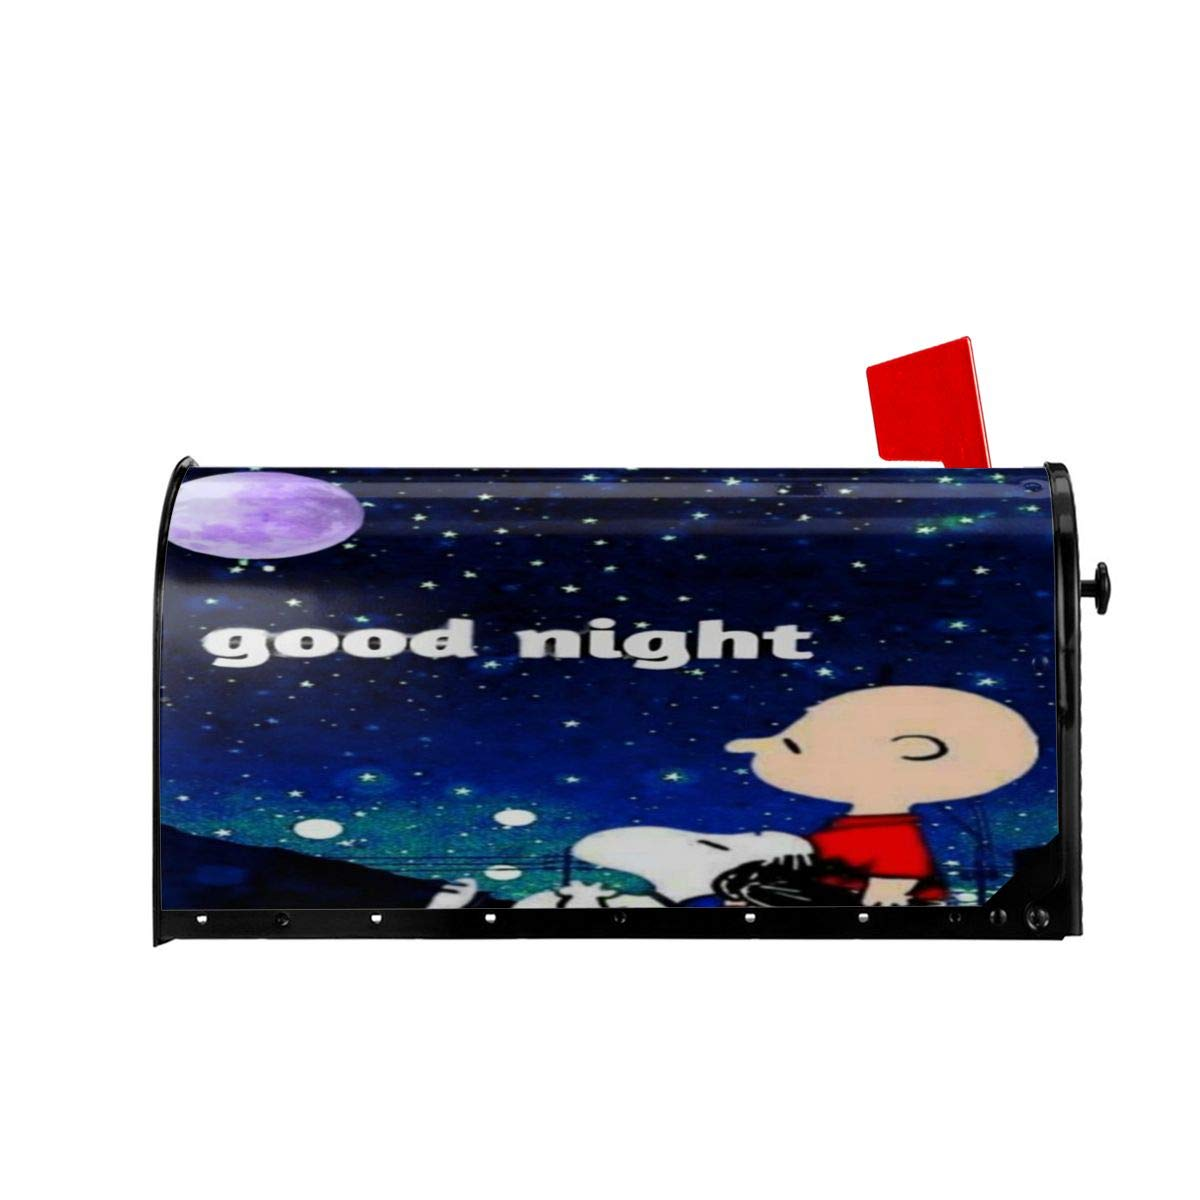 LYYTZ/_id Charlie Brown Meeting Snoopy for The First Time Mailbox Covers Magnetic Letter Post Box Wraps Cover for Standard Size,21 Lx 18 W//25.5 Lx 21 W